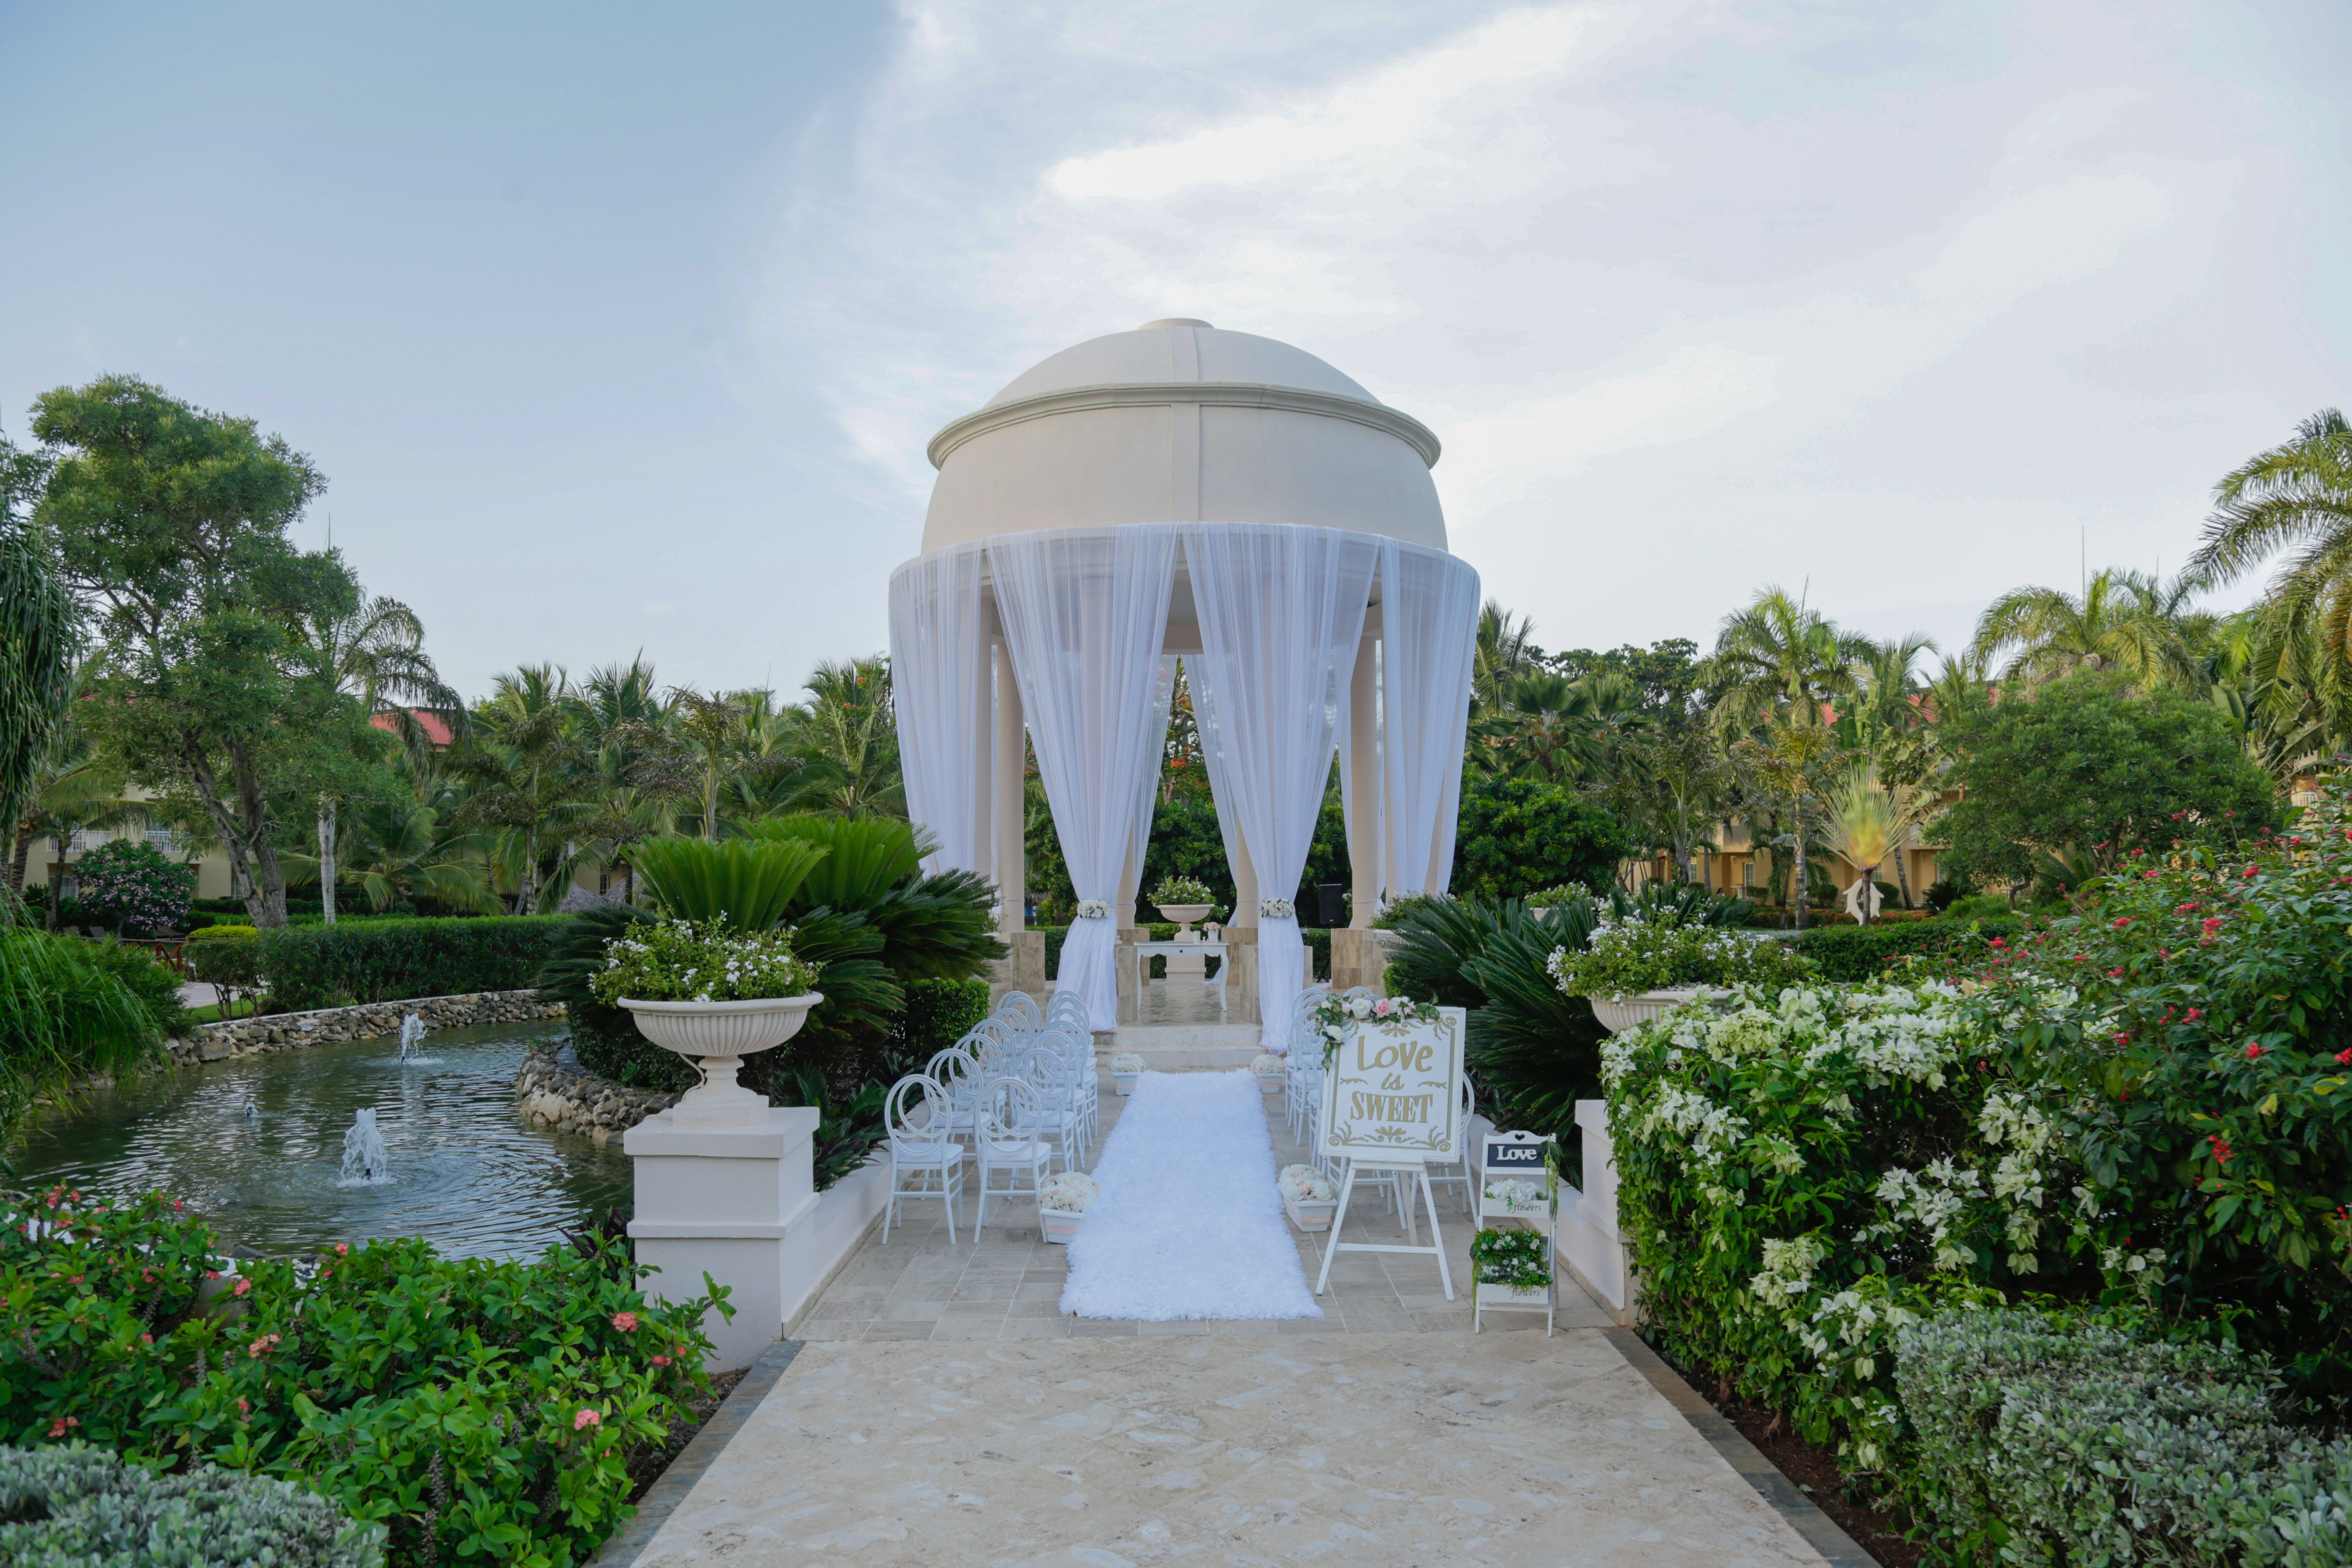 Enjoy Your Wedding Ceremony In The Tranquility Of Our Gardens Dreamspuntacana Dominicanrepublic Desti Dreams Punta Cana Punta Cana Resort Punta Cana Wedding